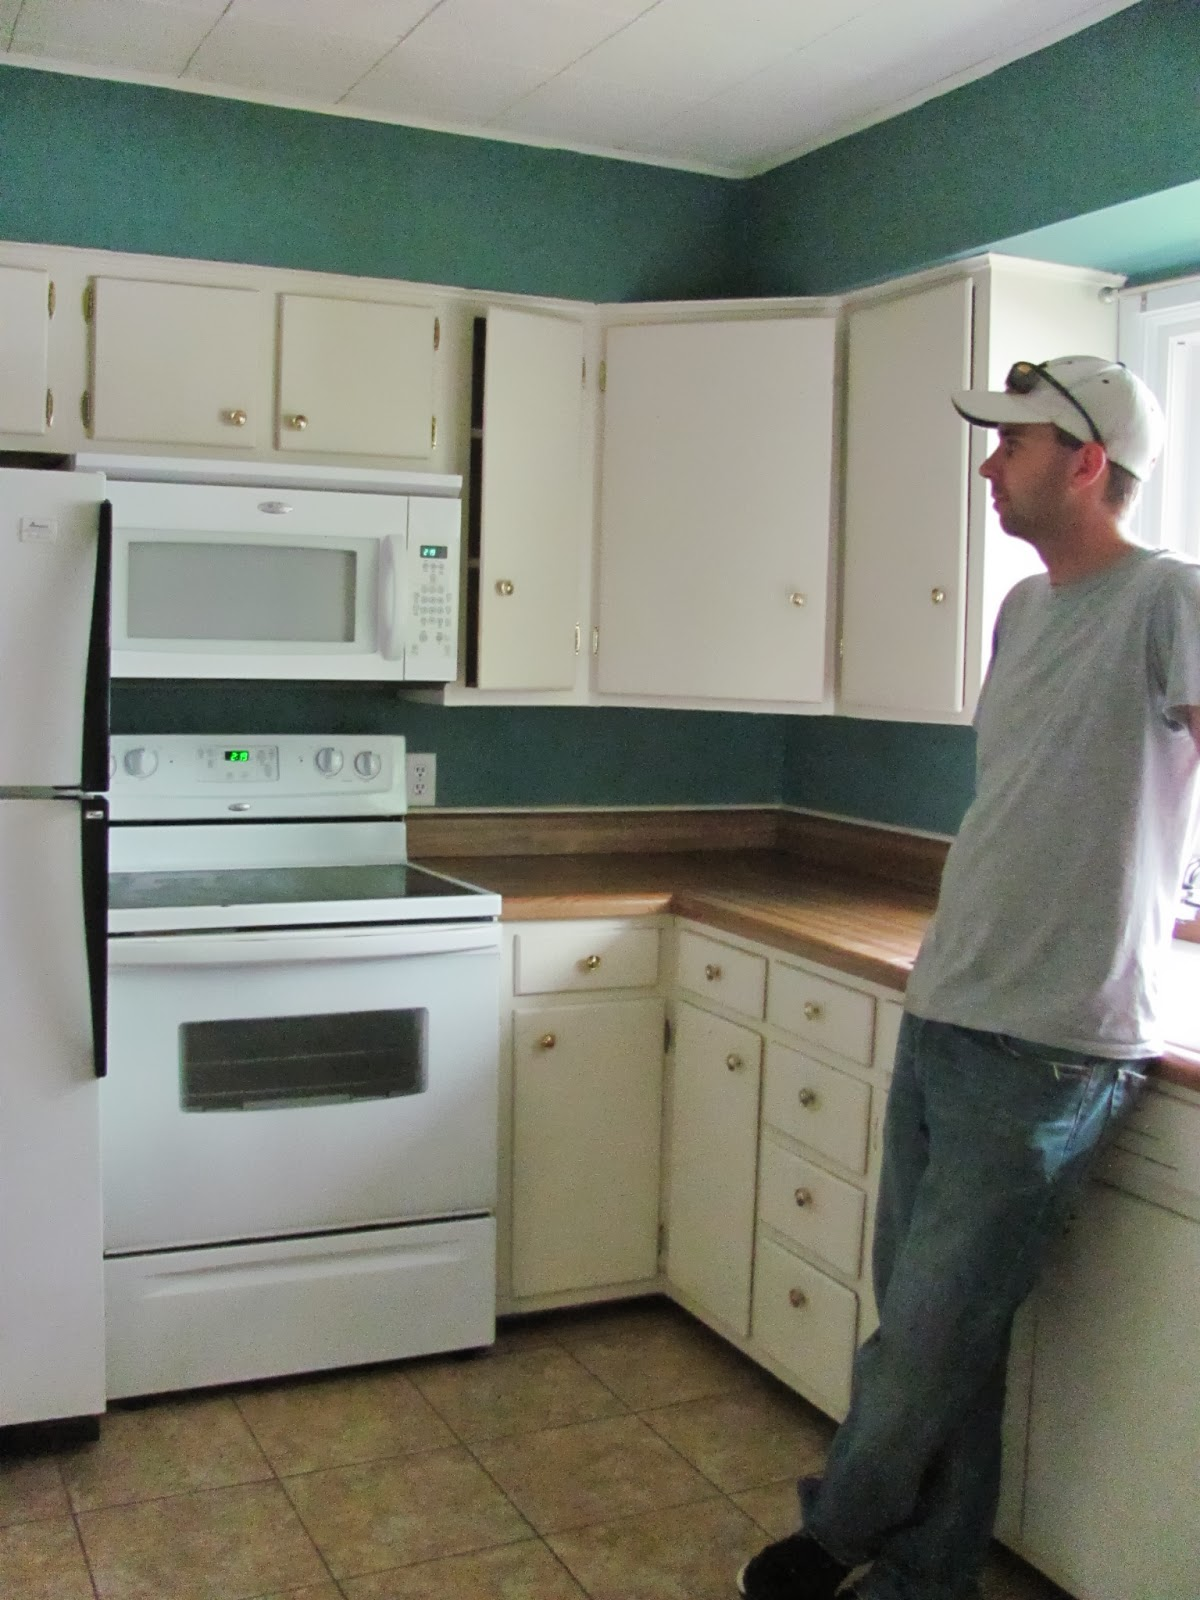 Cory is looking around the kitchen before leaving the old house